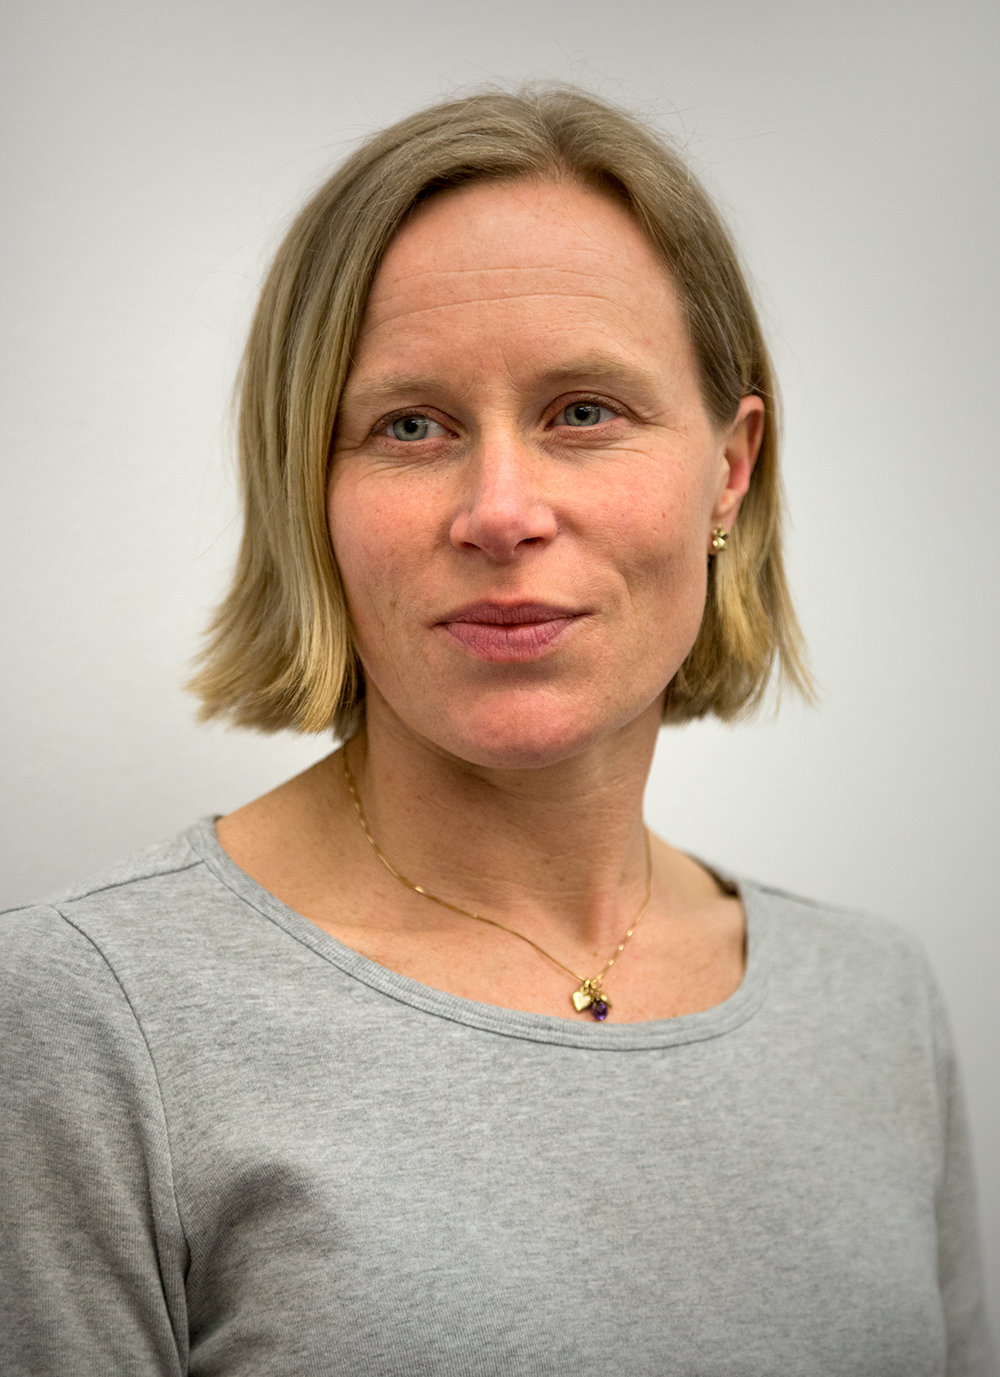 Katarina Lundin Docent, Språk- och litteraturcentrum, Lunds universitet, Sverige